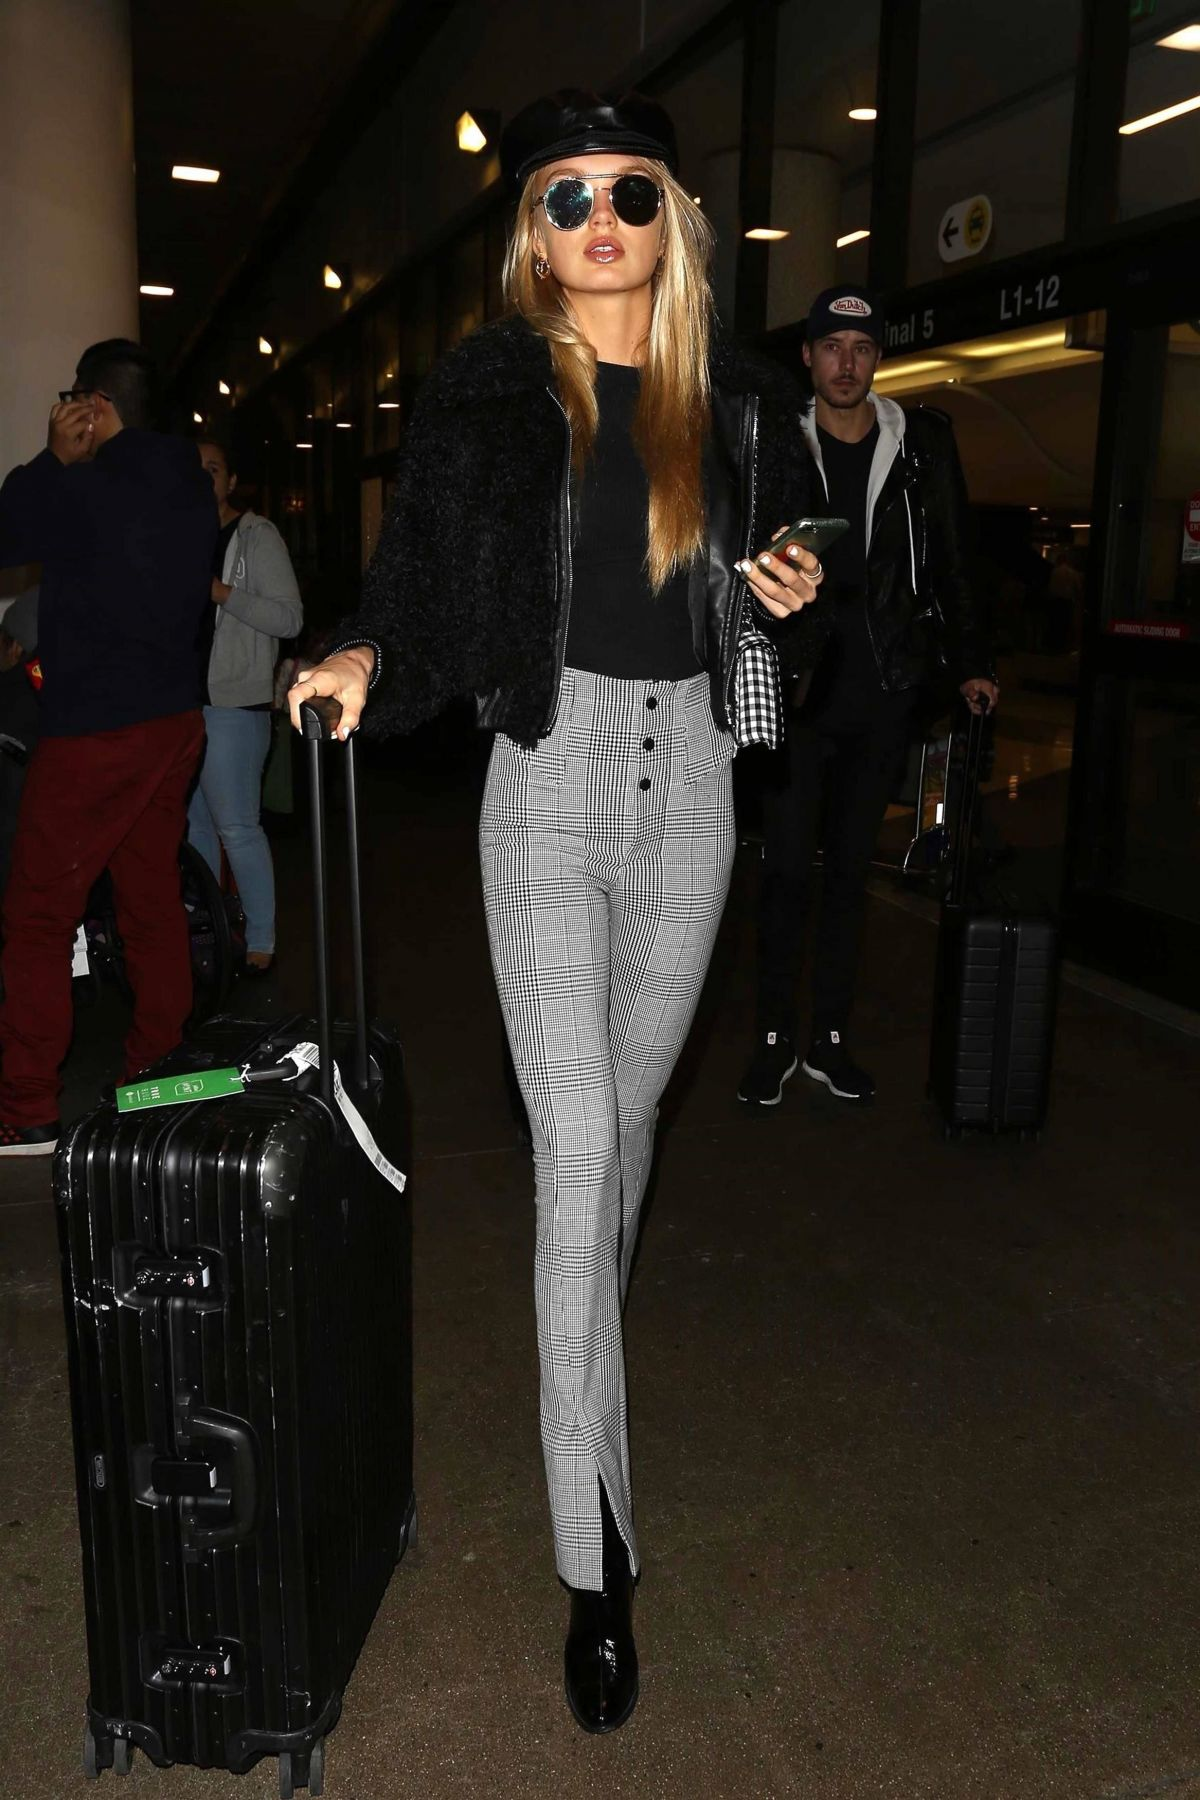 Romee Strijd Spotted at LAX Airport in LA